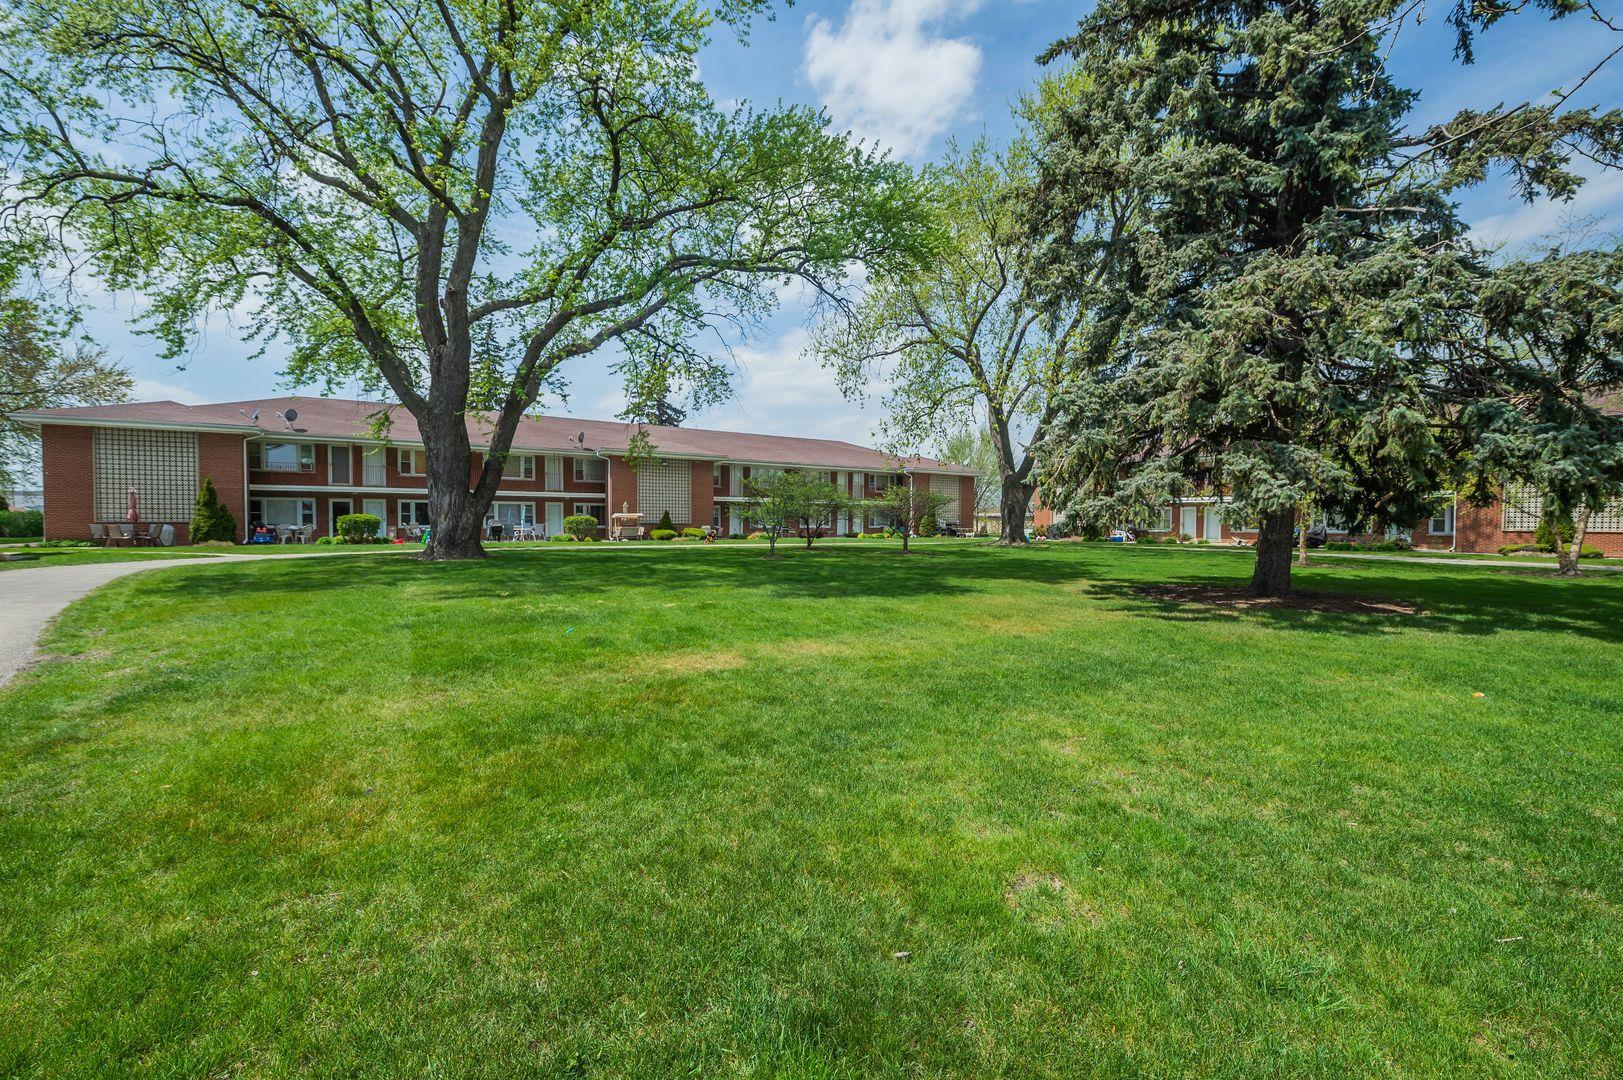 1111 Holiday Lane #14, Des Plaines, IL 60016 - #: 11067662